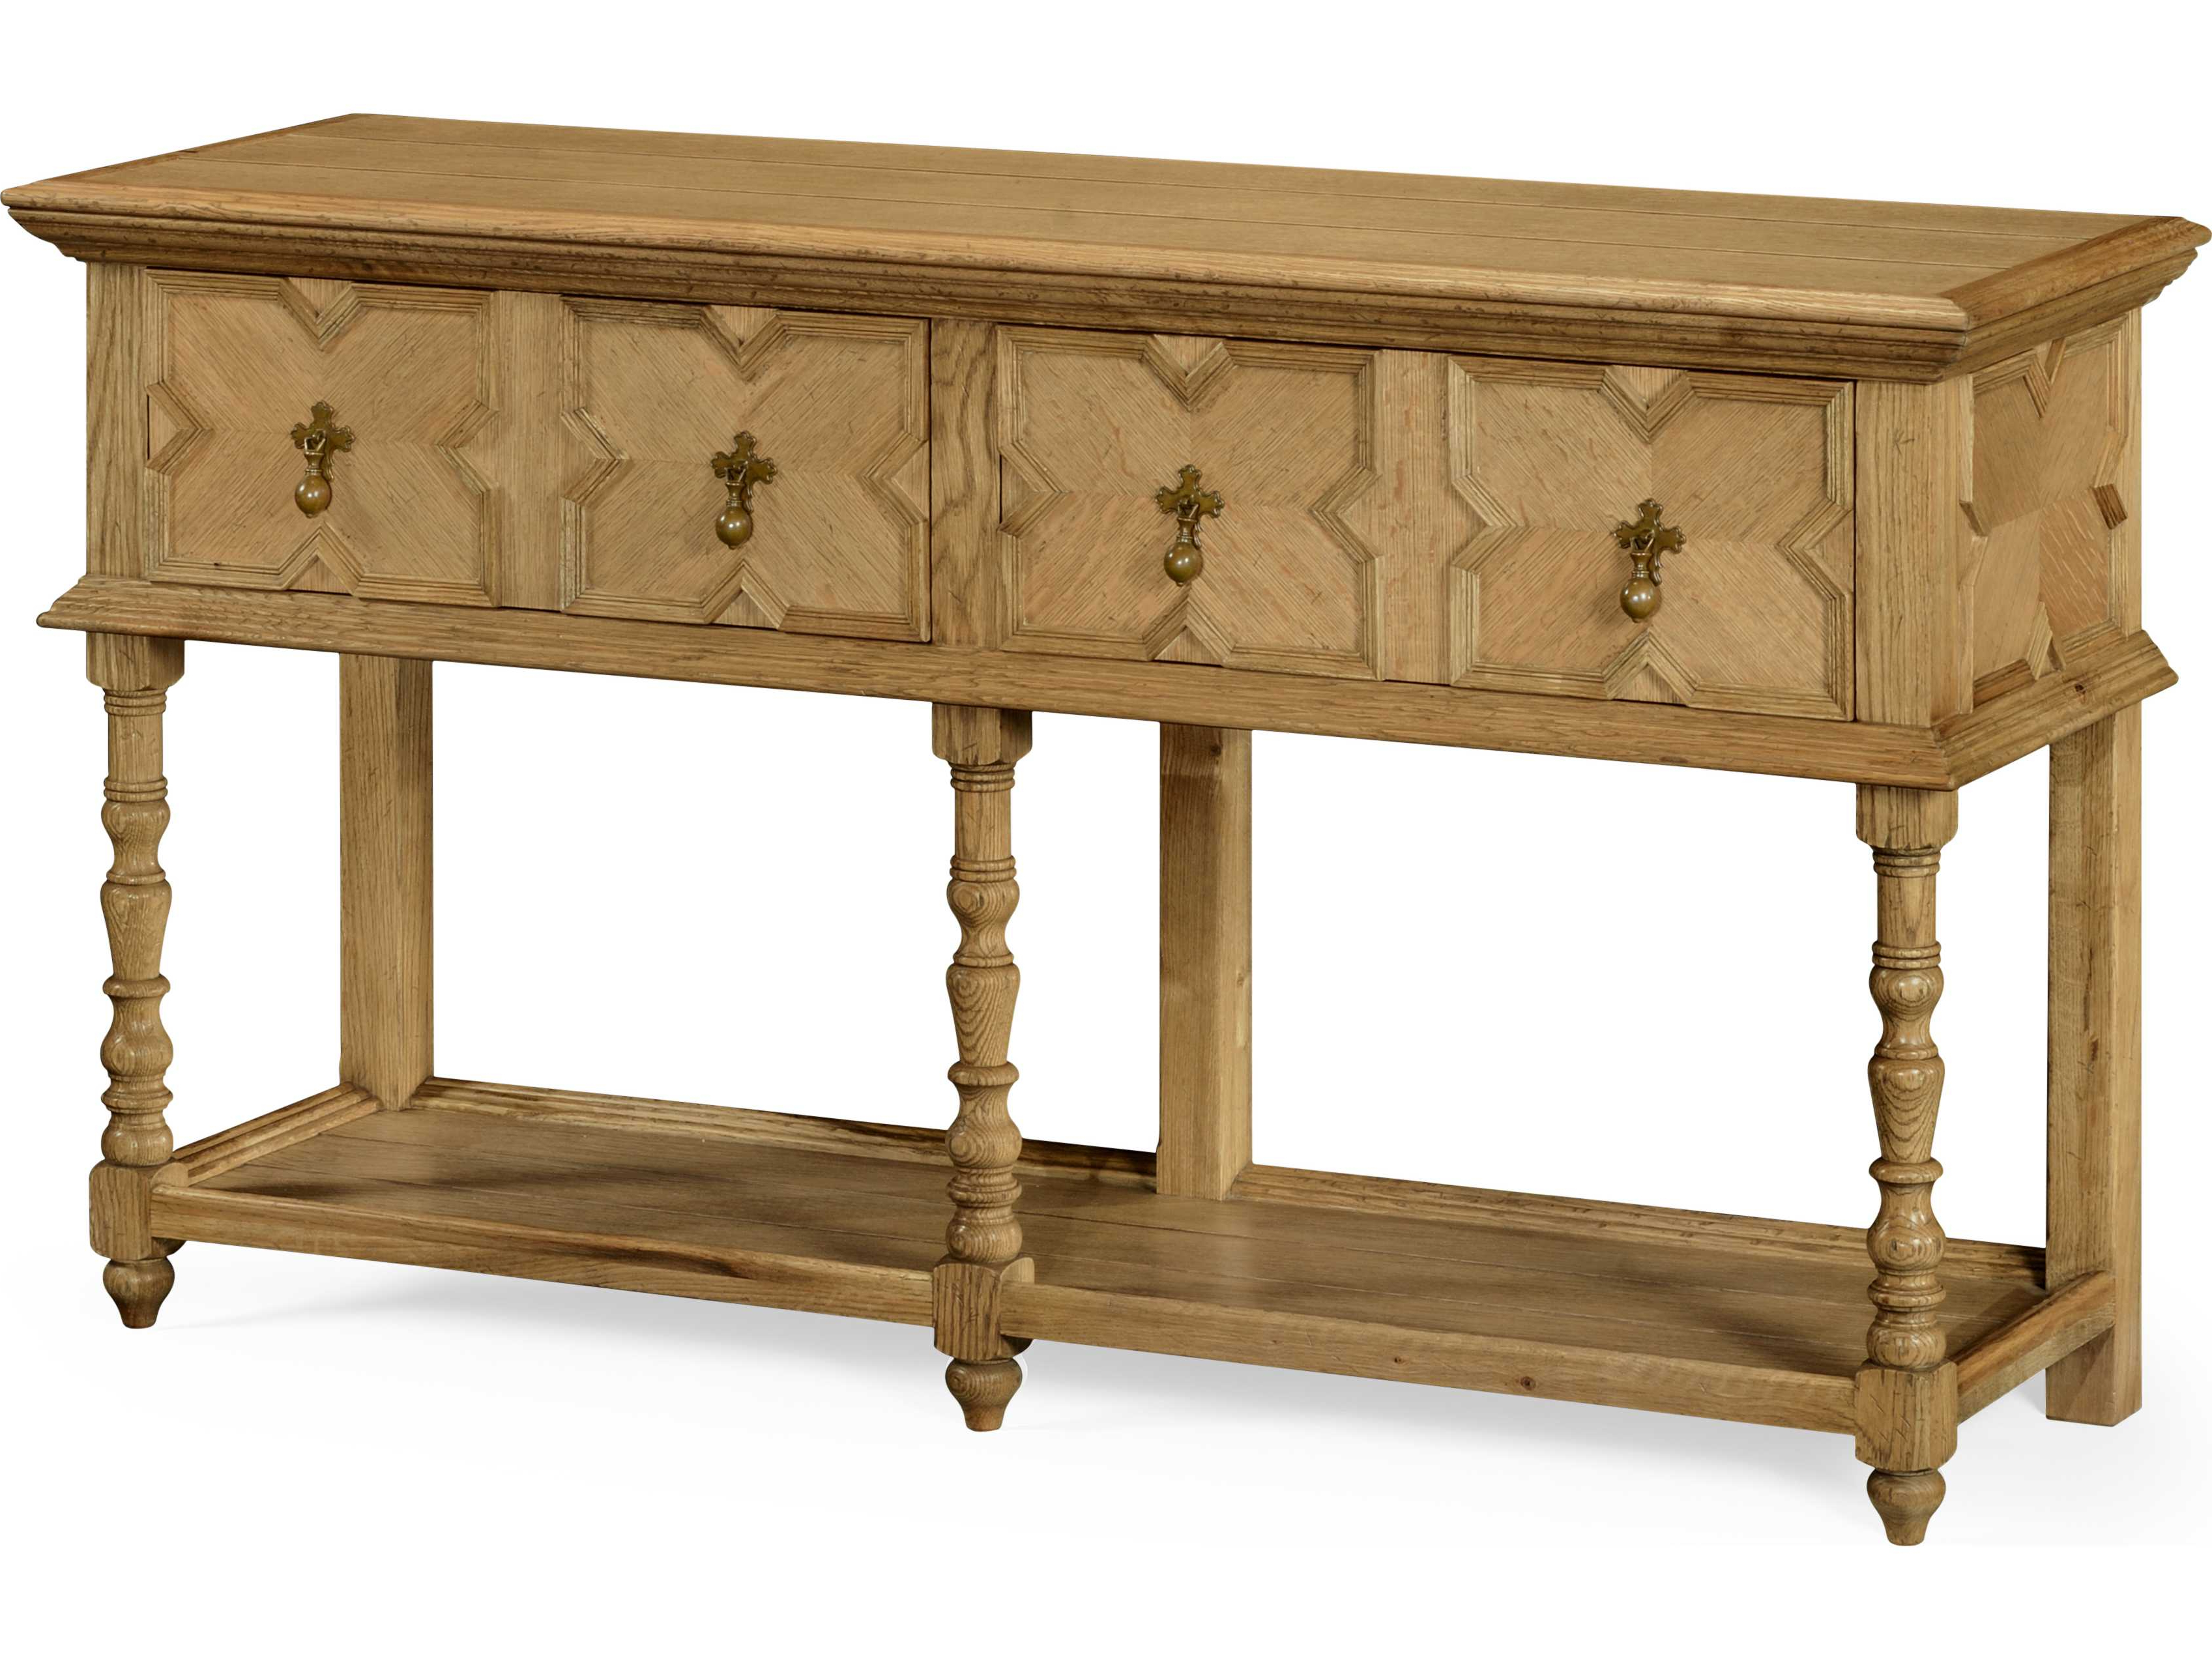 Jonathan Charles Natural Oak Light Natural Oak 64 X 20 Buffet Regarding Balboa Carved Console Tables (Gallery 20 of 20)